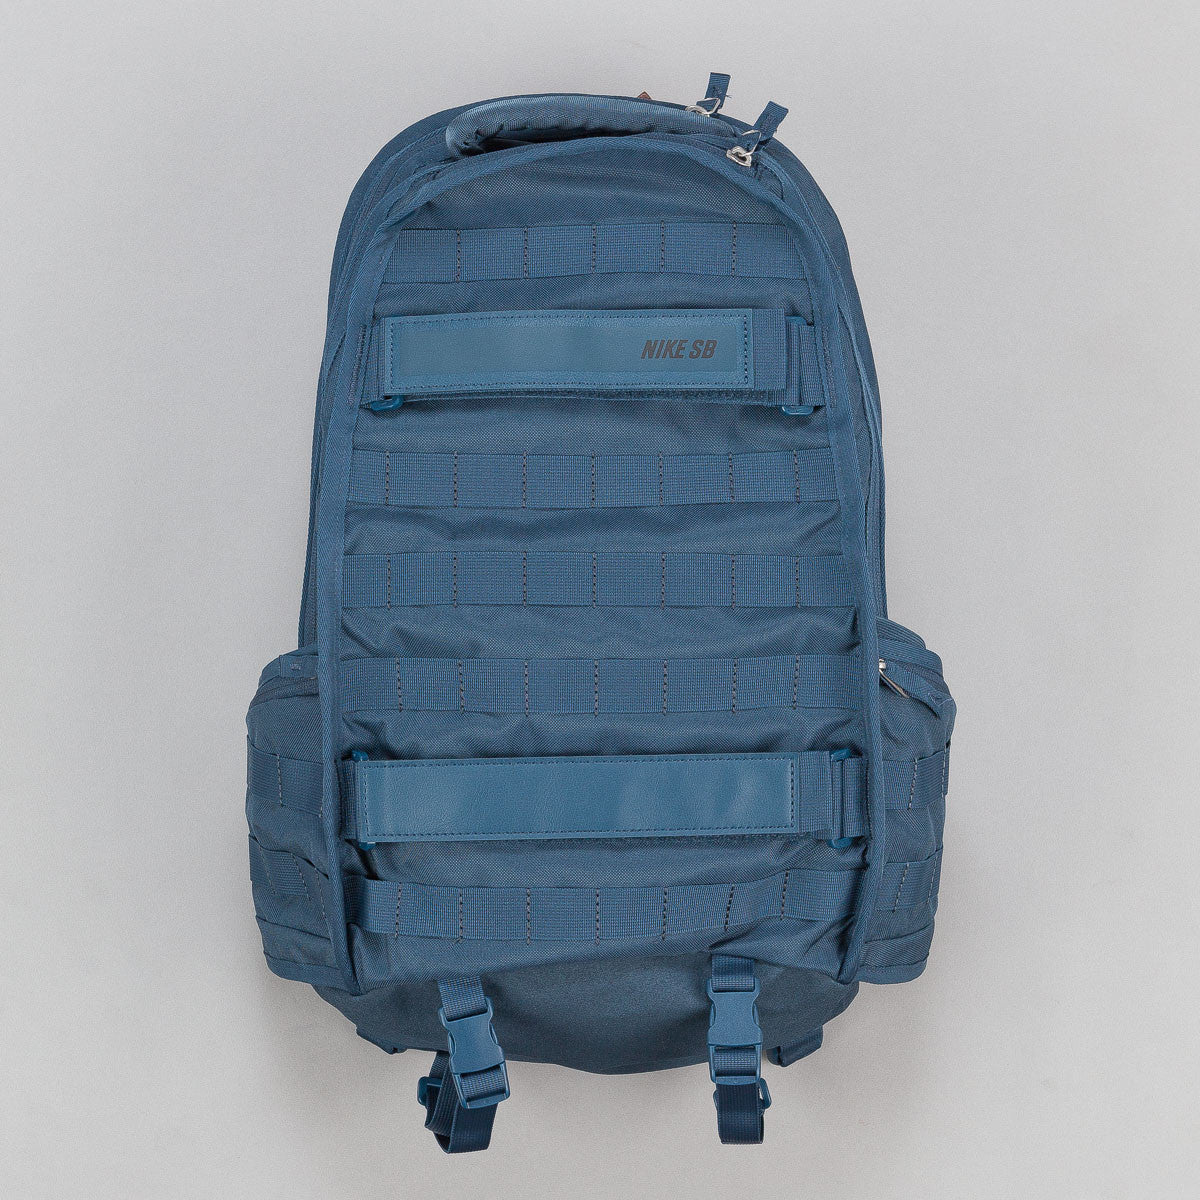 Nike SB RPM Backpack - Squadron Blue / Squadron Blue / Black